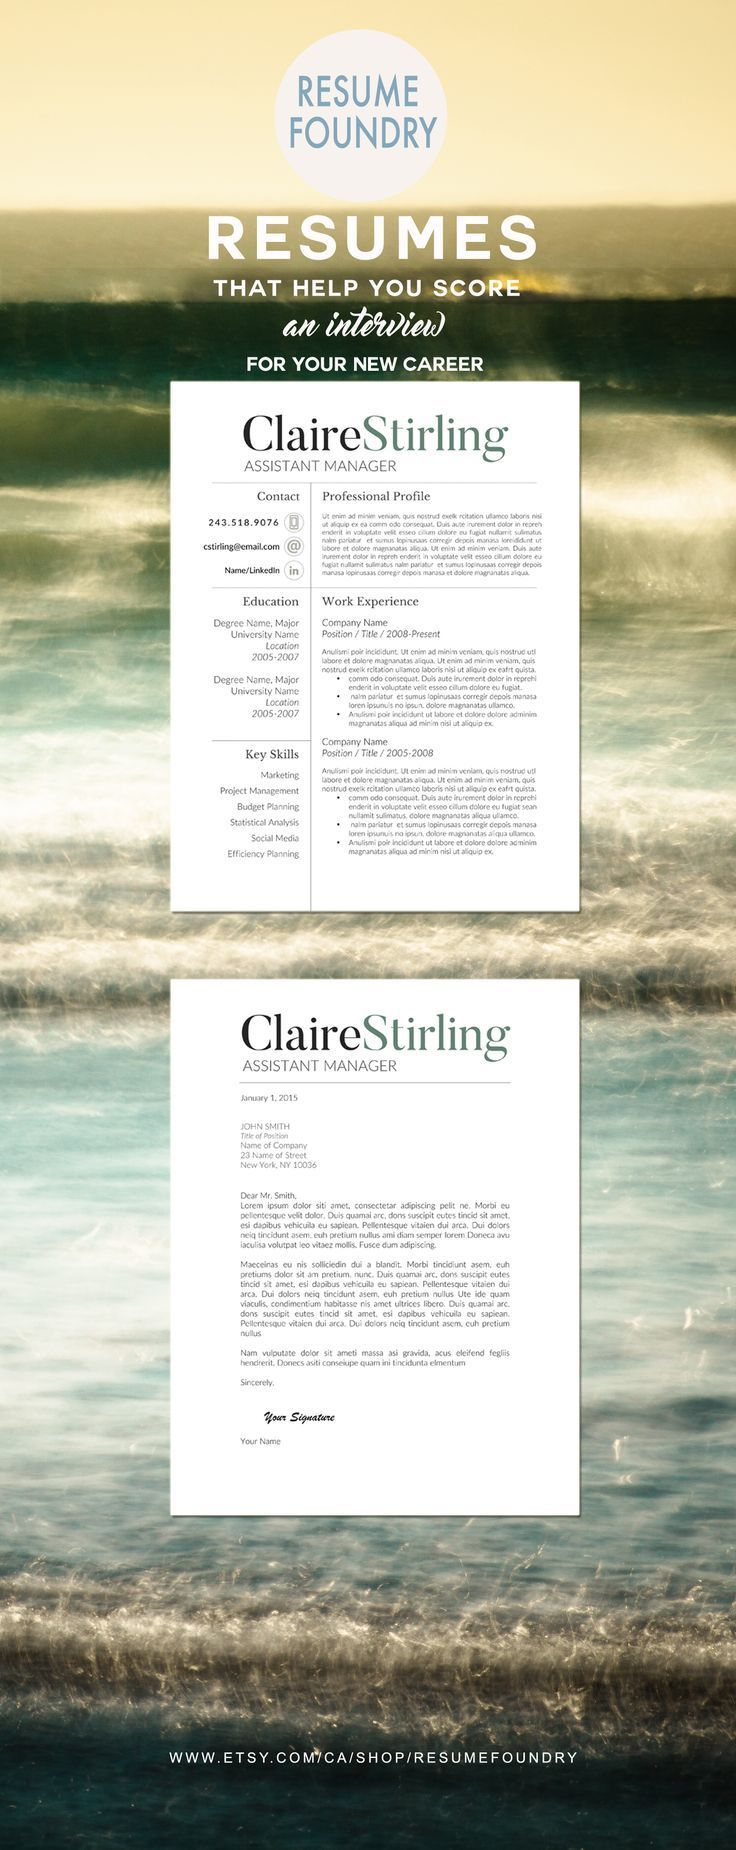 career change resume sample%0A We hope this creative resume template is the wave of change for your career